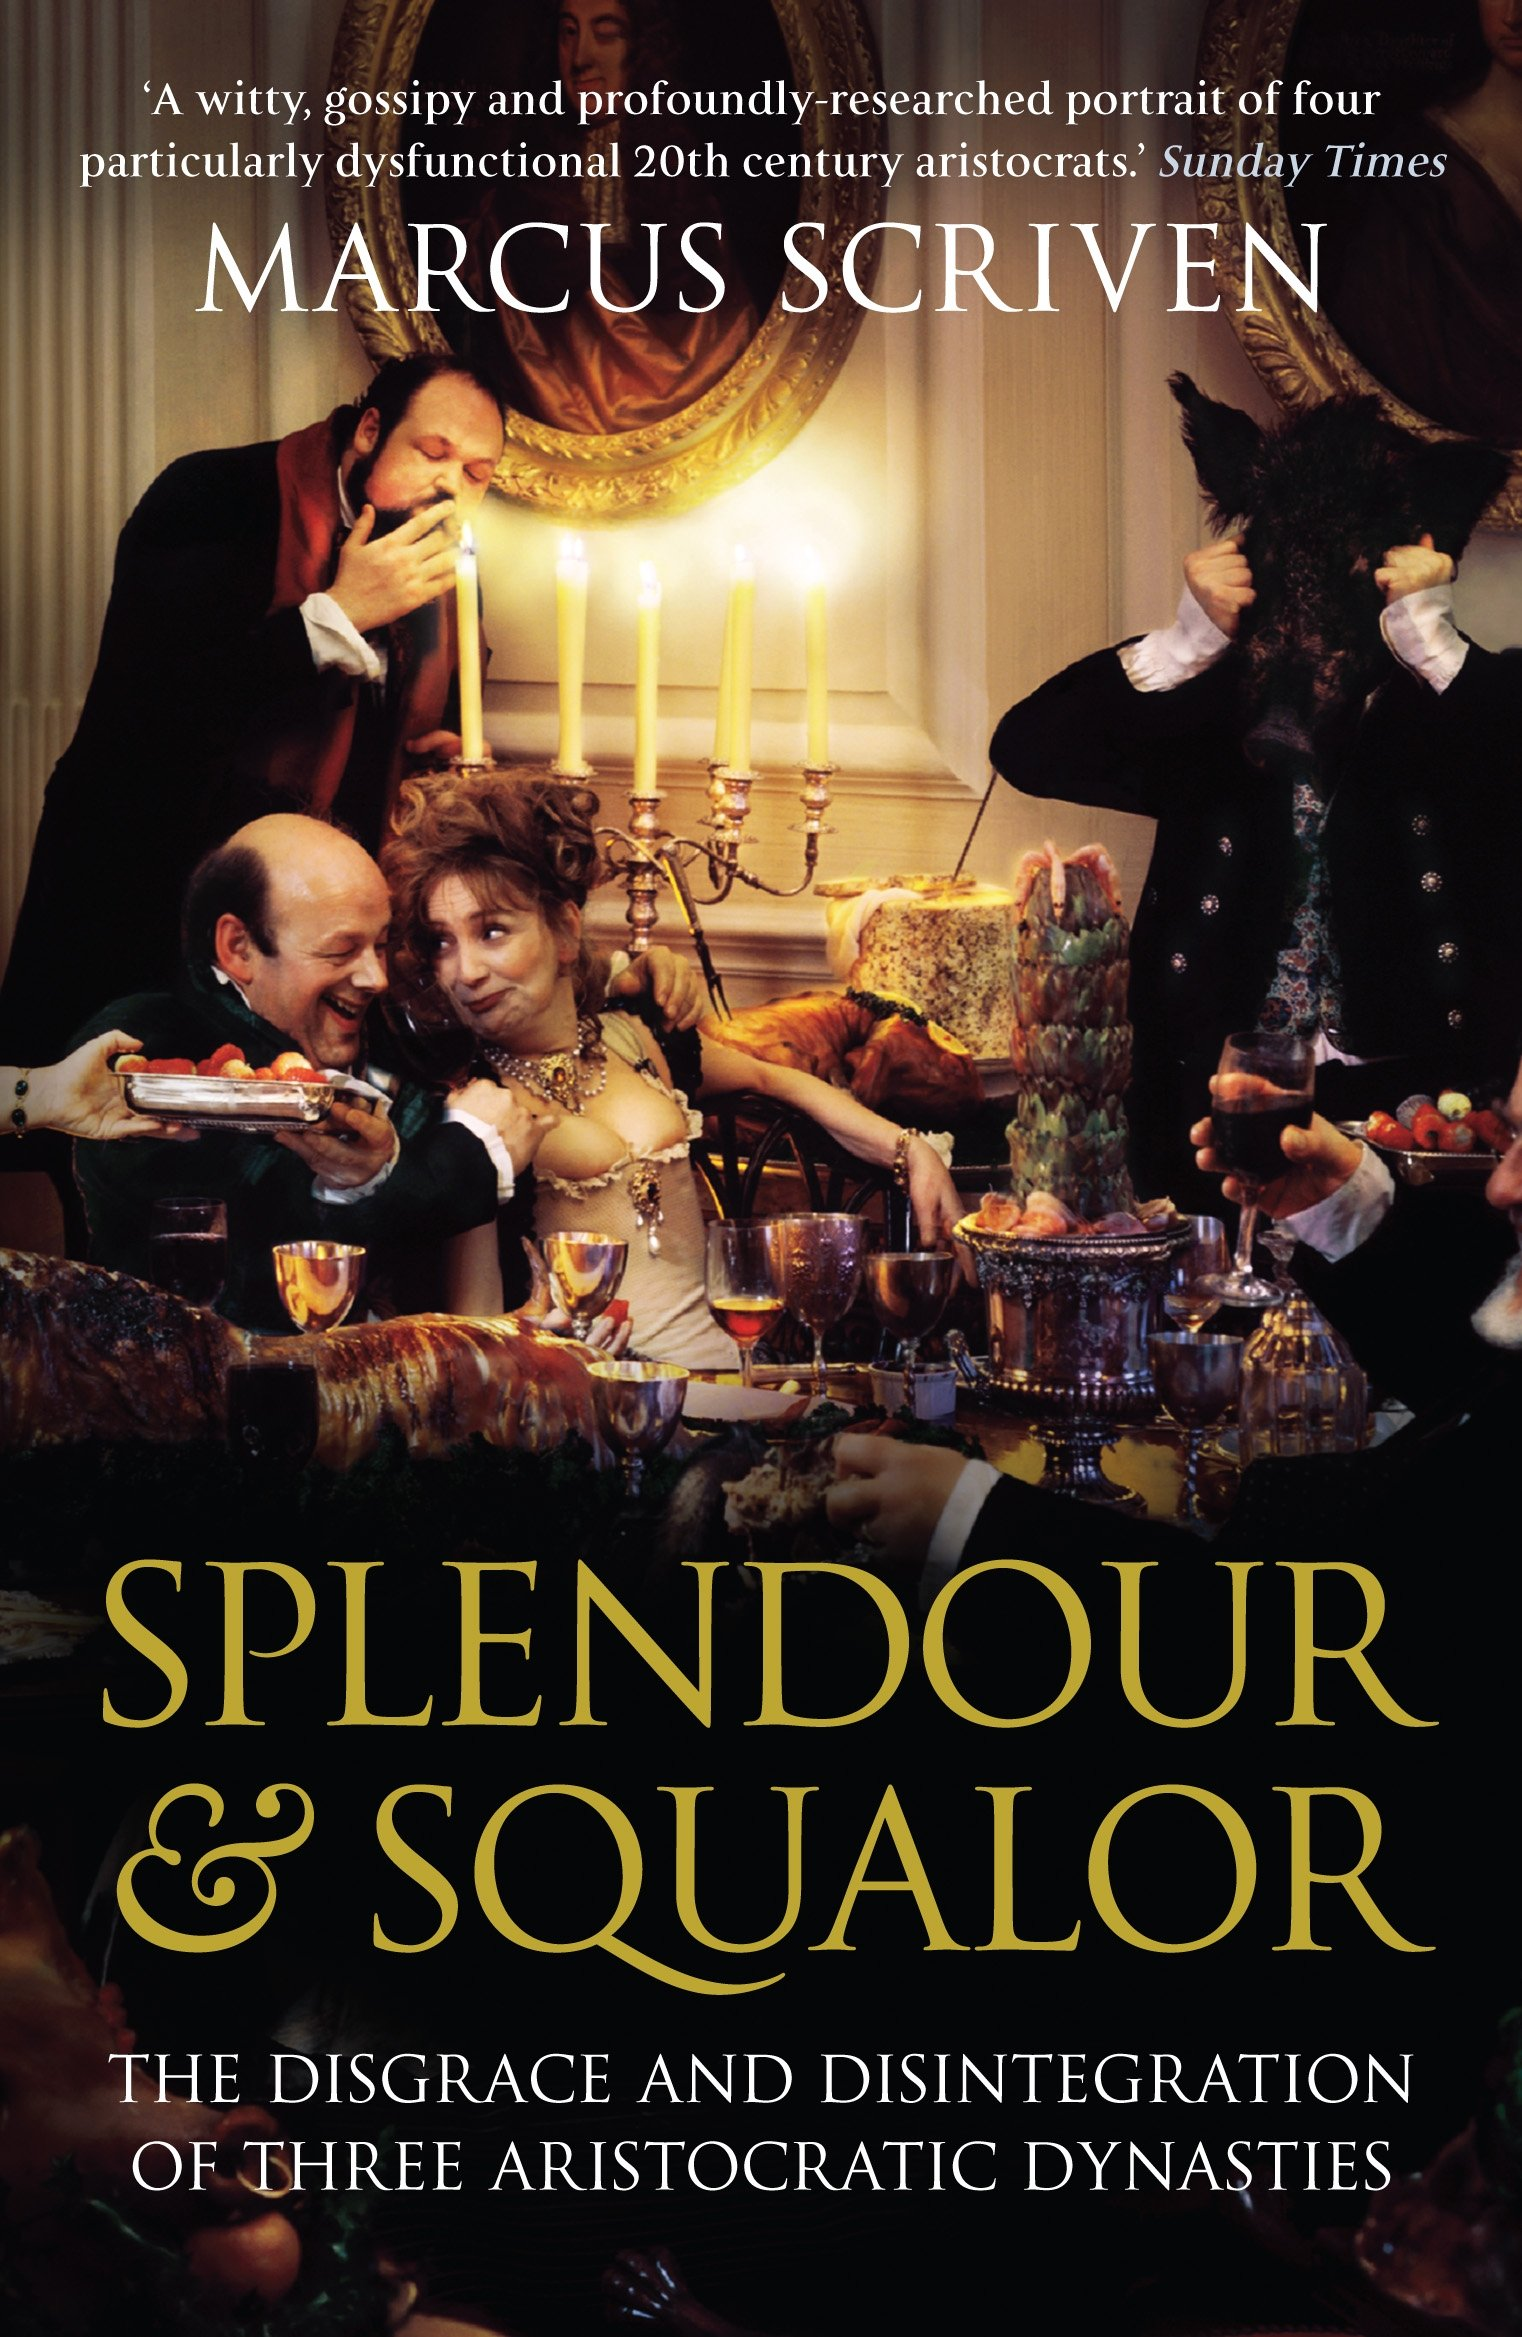 Splendour and Squalor: The Disgrace and Disintegration of Three Aristocratic Dynasties